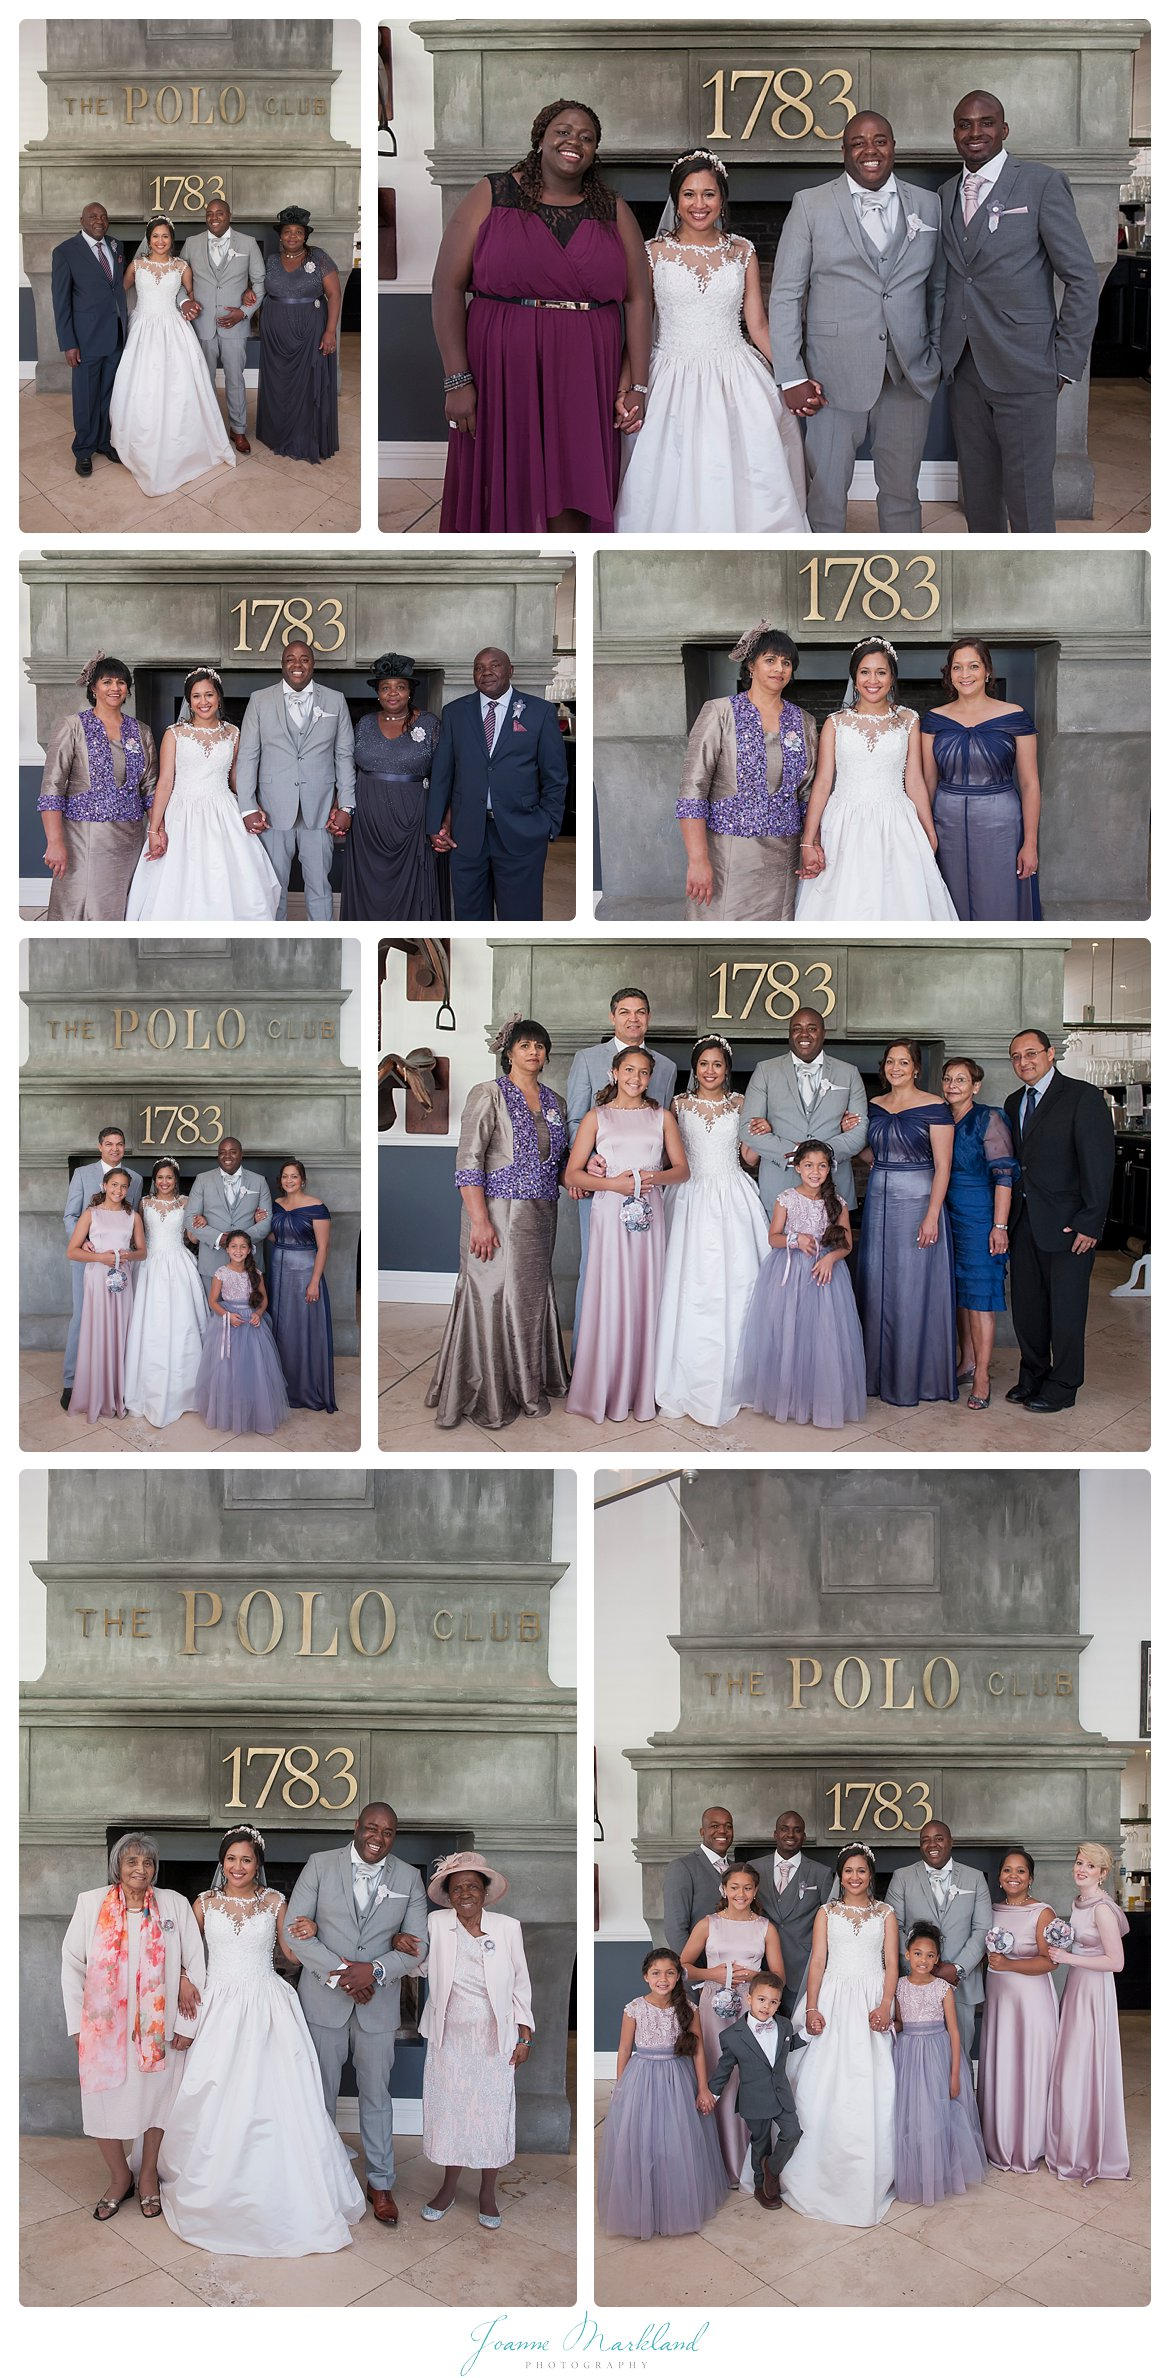 Val_de_vie_wedding_joanne_markland_photography_paarl-035